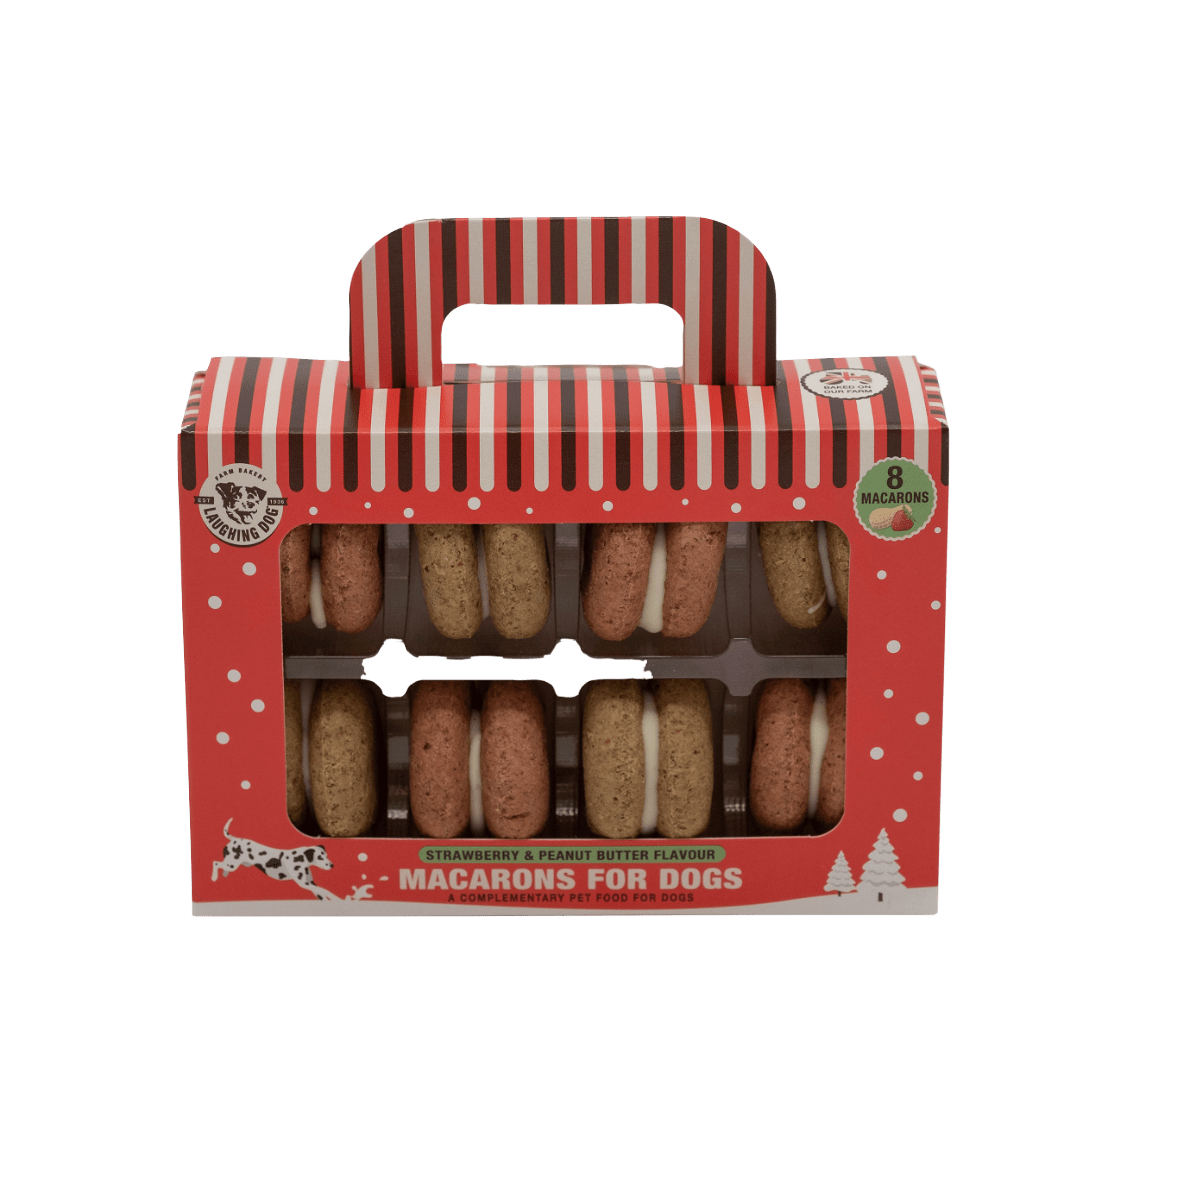 Christmas presents for dogs - macarons for dogs from Laughing Dog Food